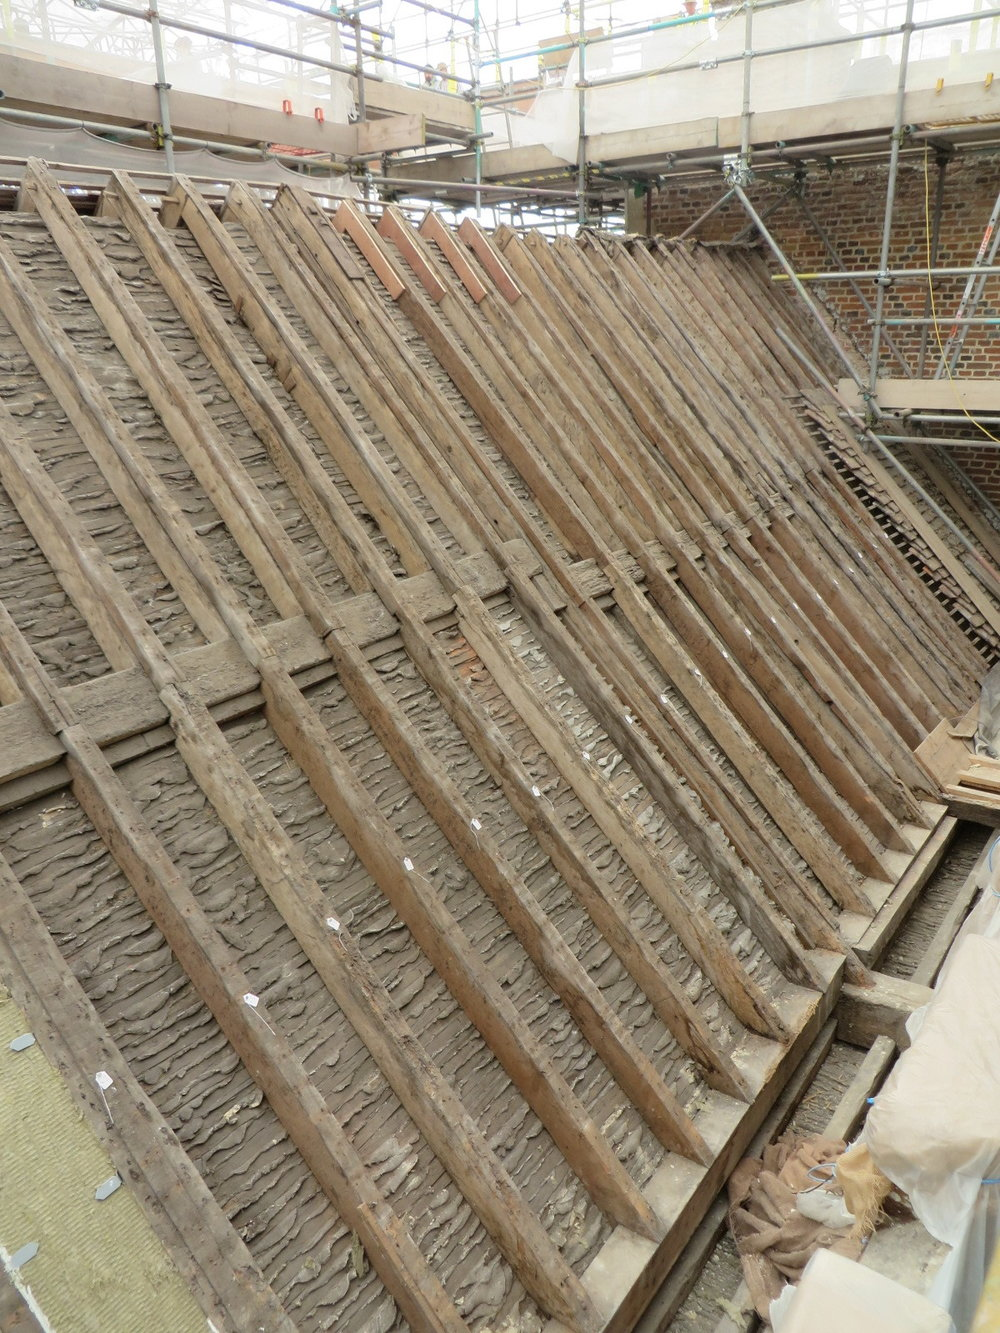 Roof structure upon removal of clay tiles